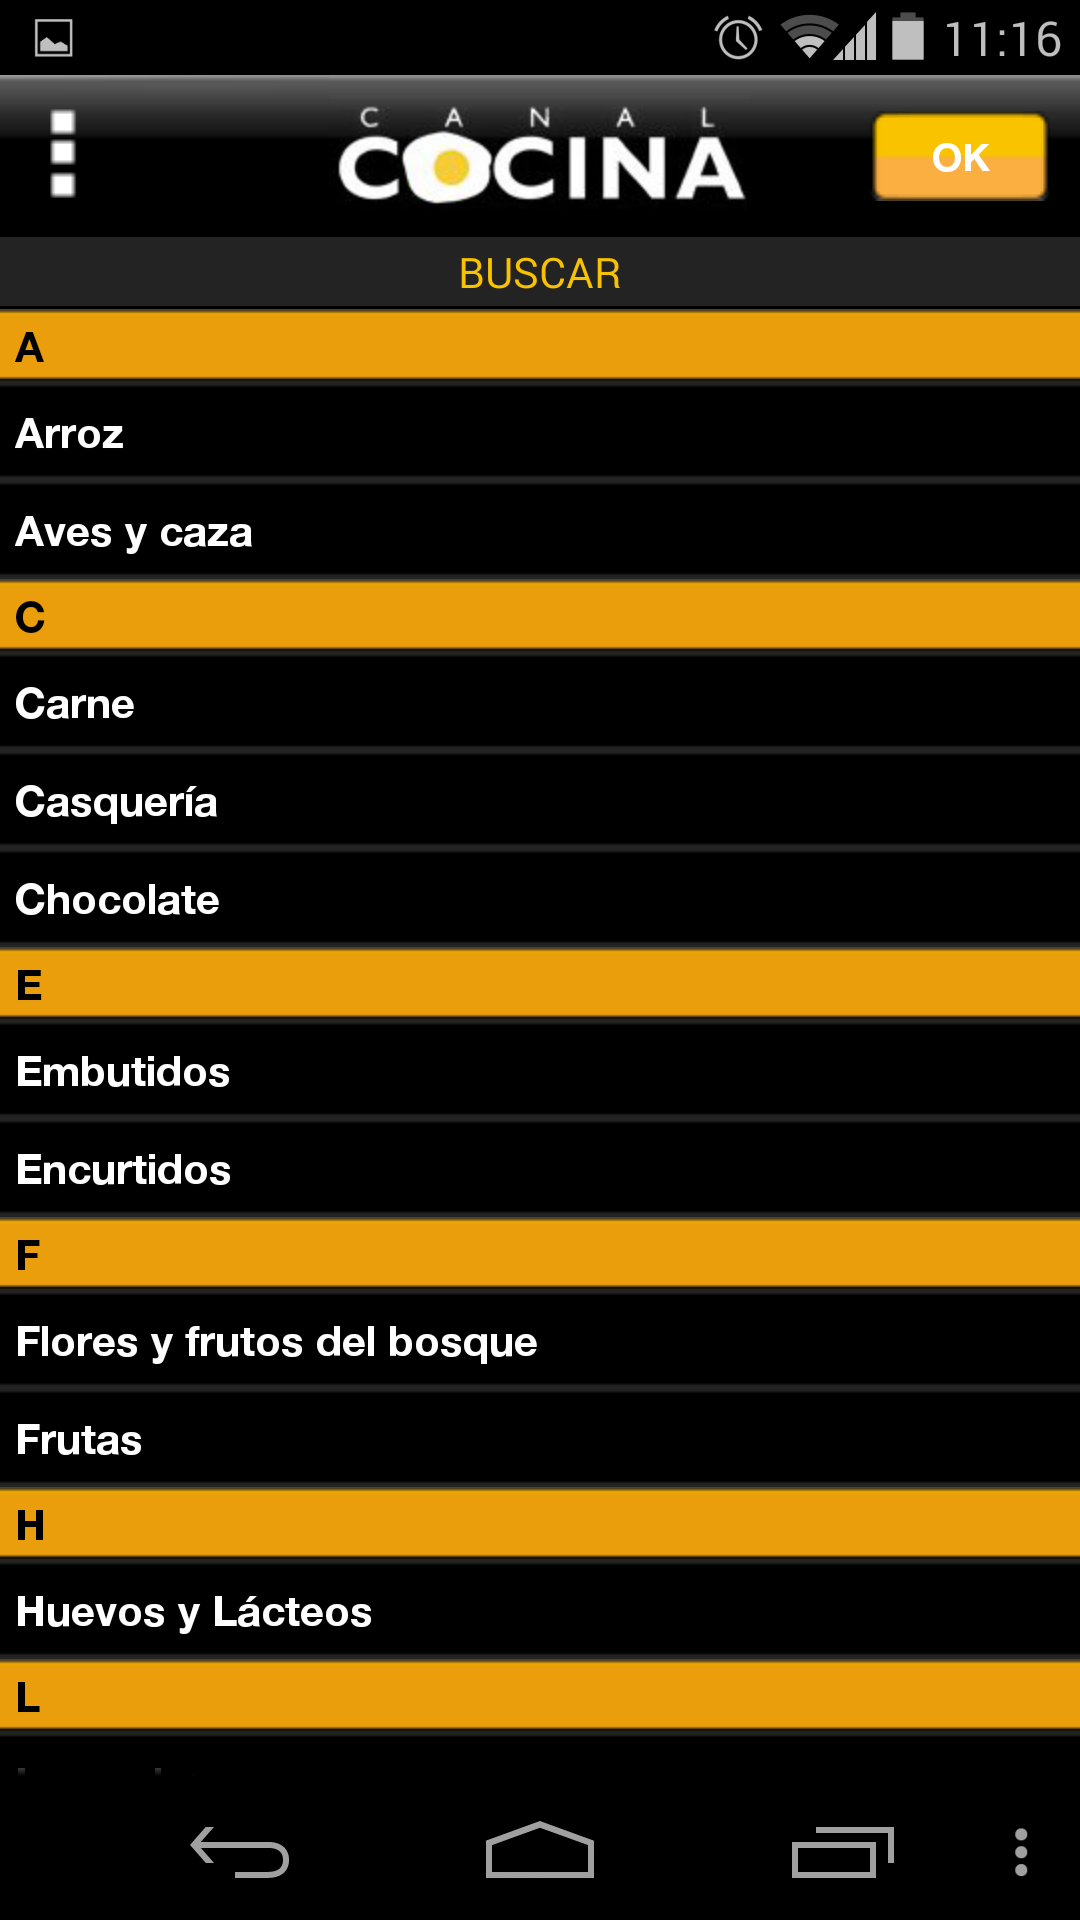 canal cocina appstore for android